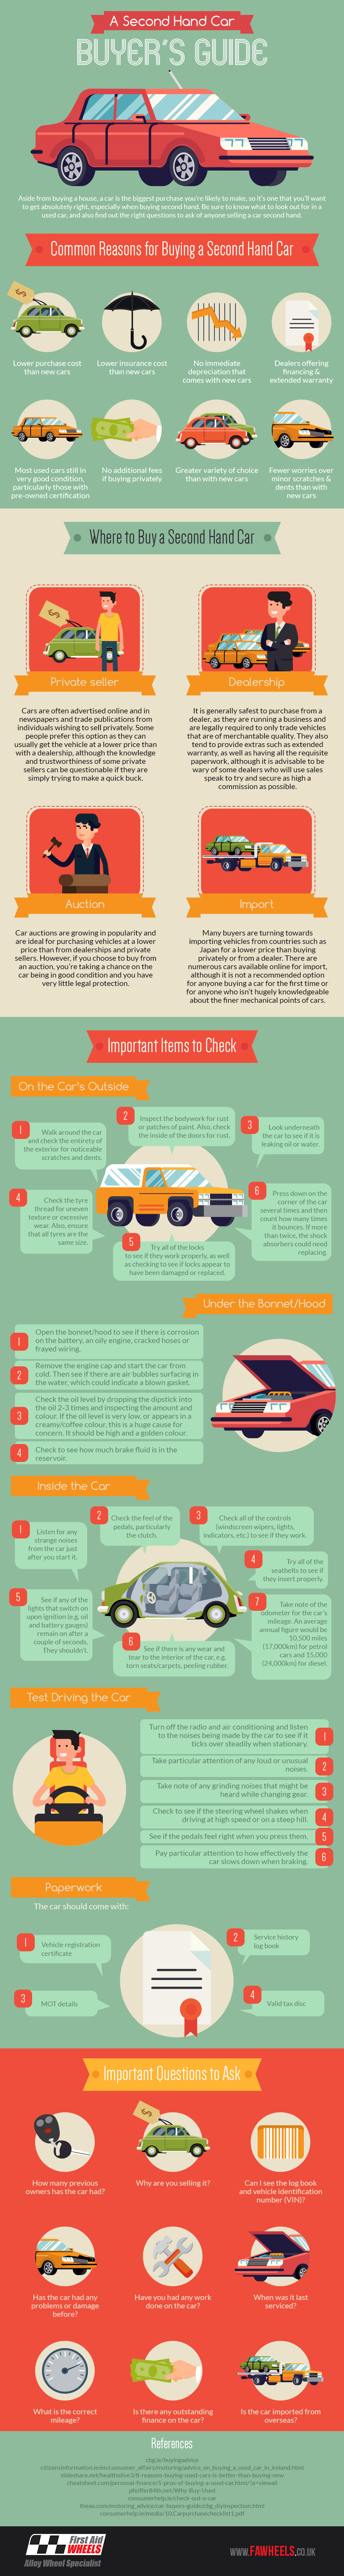 second hand car buyers guide - infographic